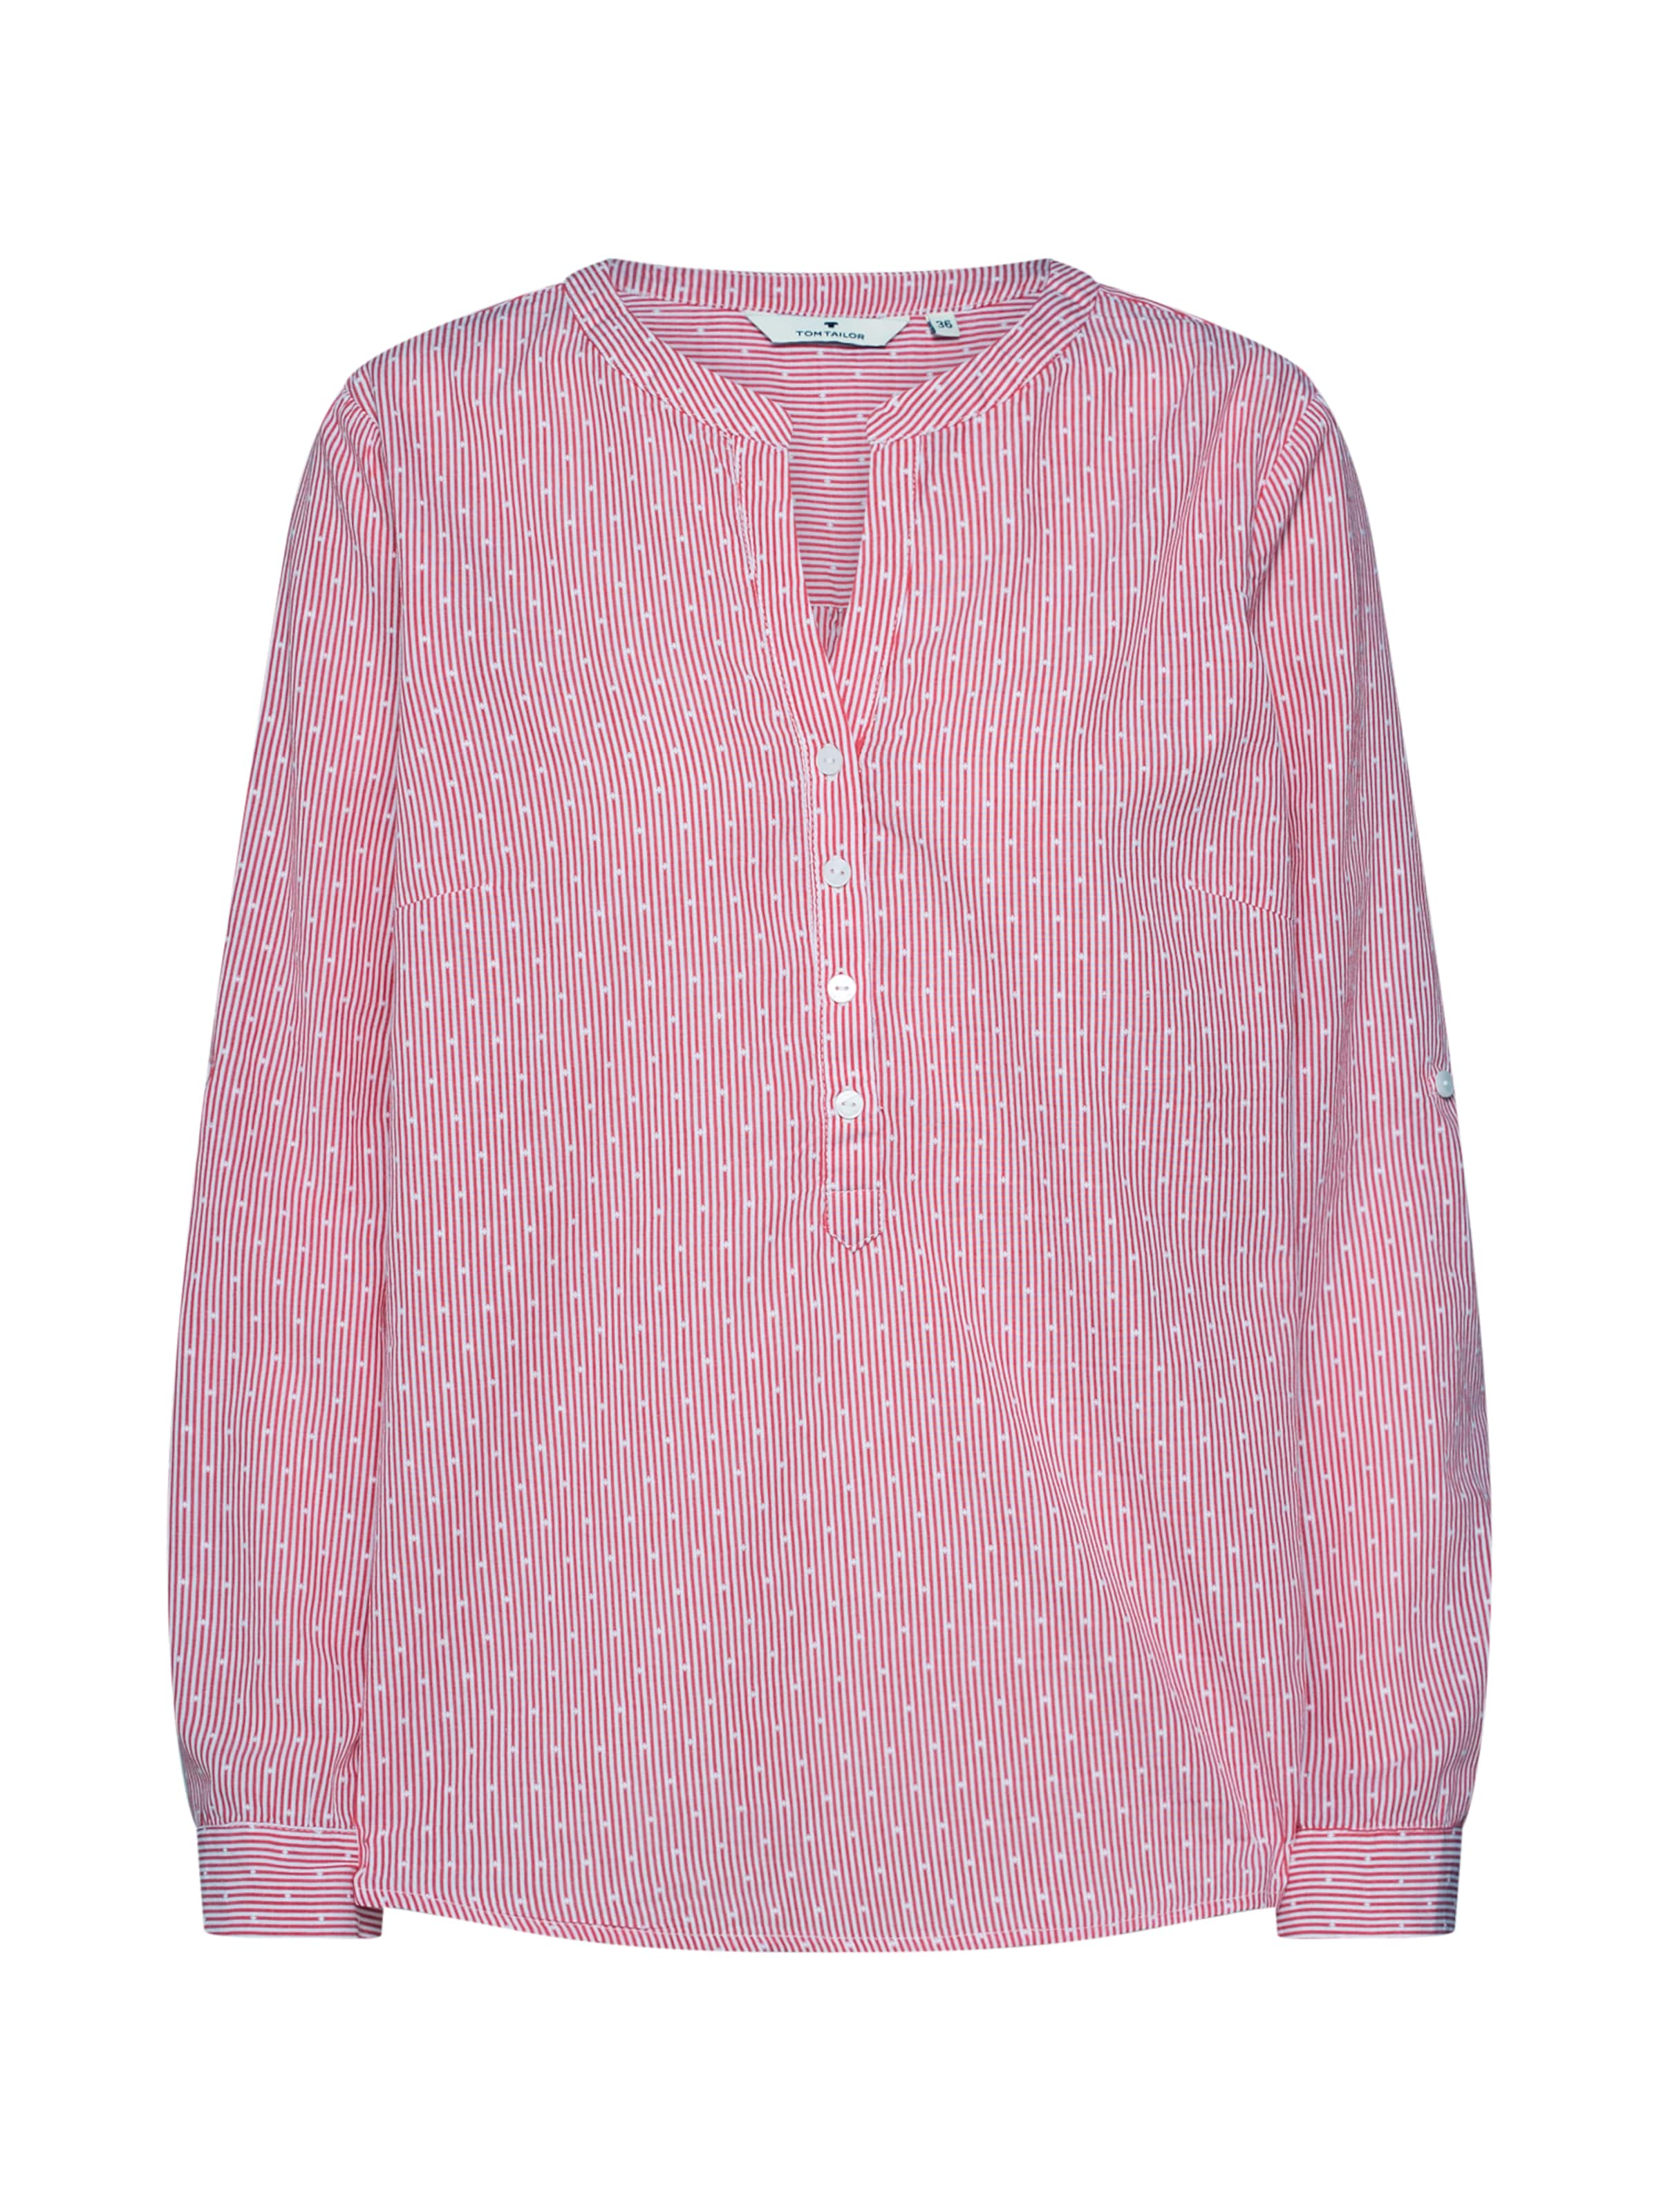 Tom Blouse' In Tailor Bluse Rot 'structured 8ONkZnX0wP